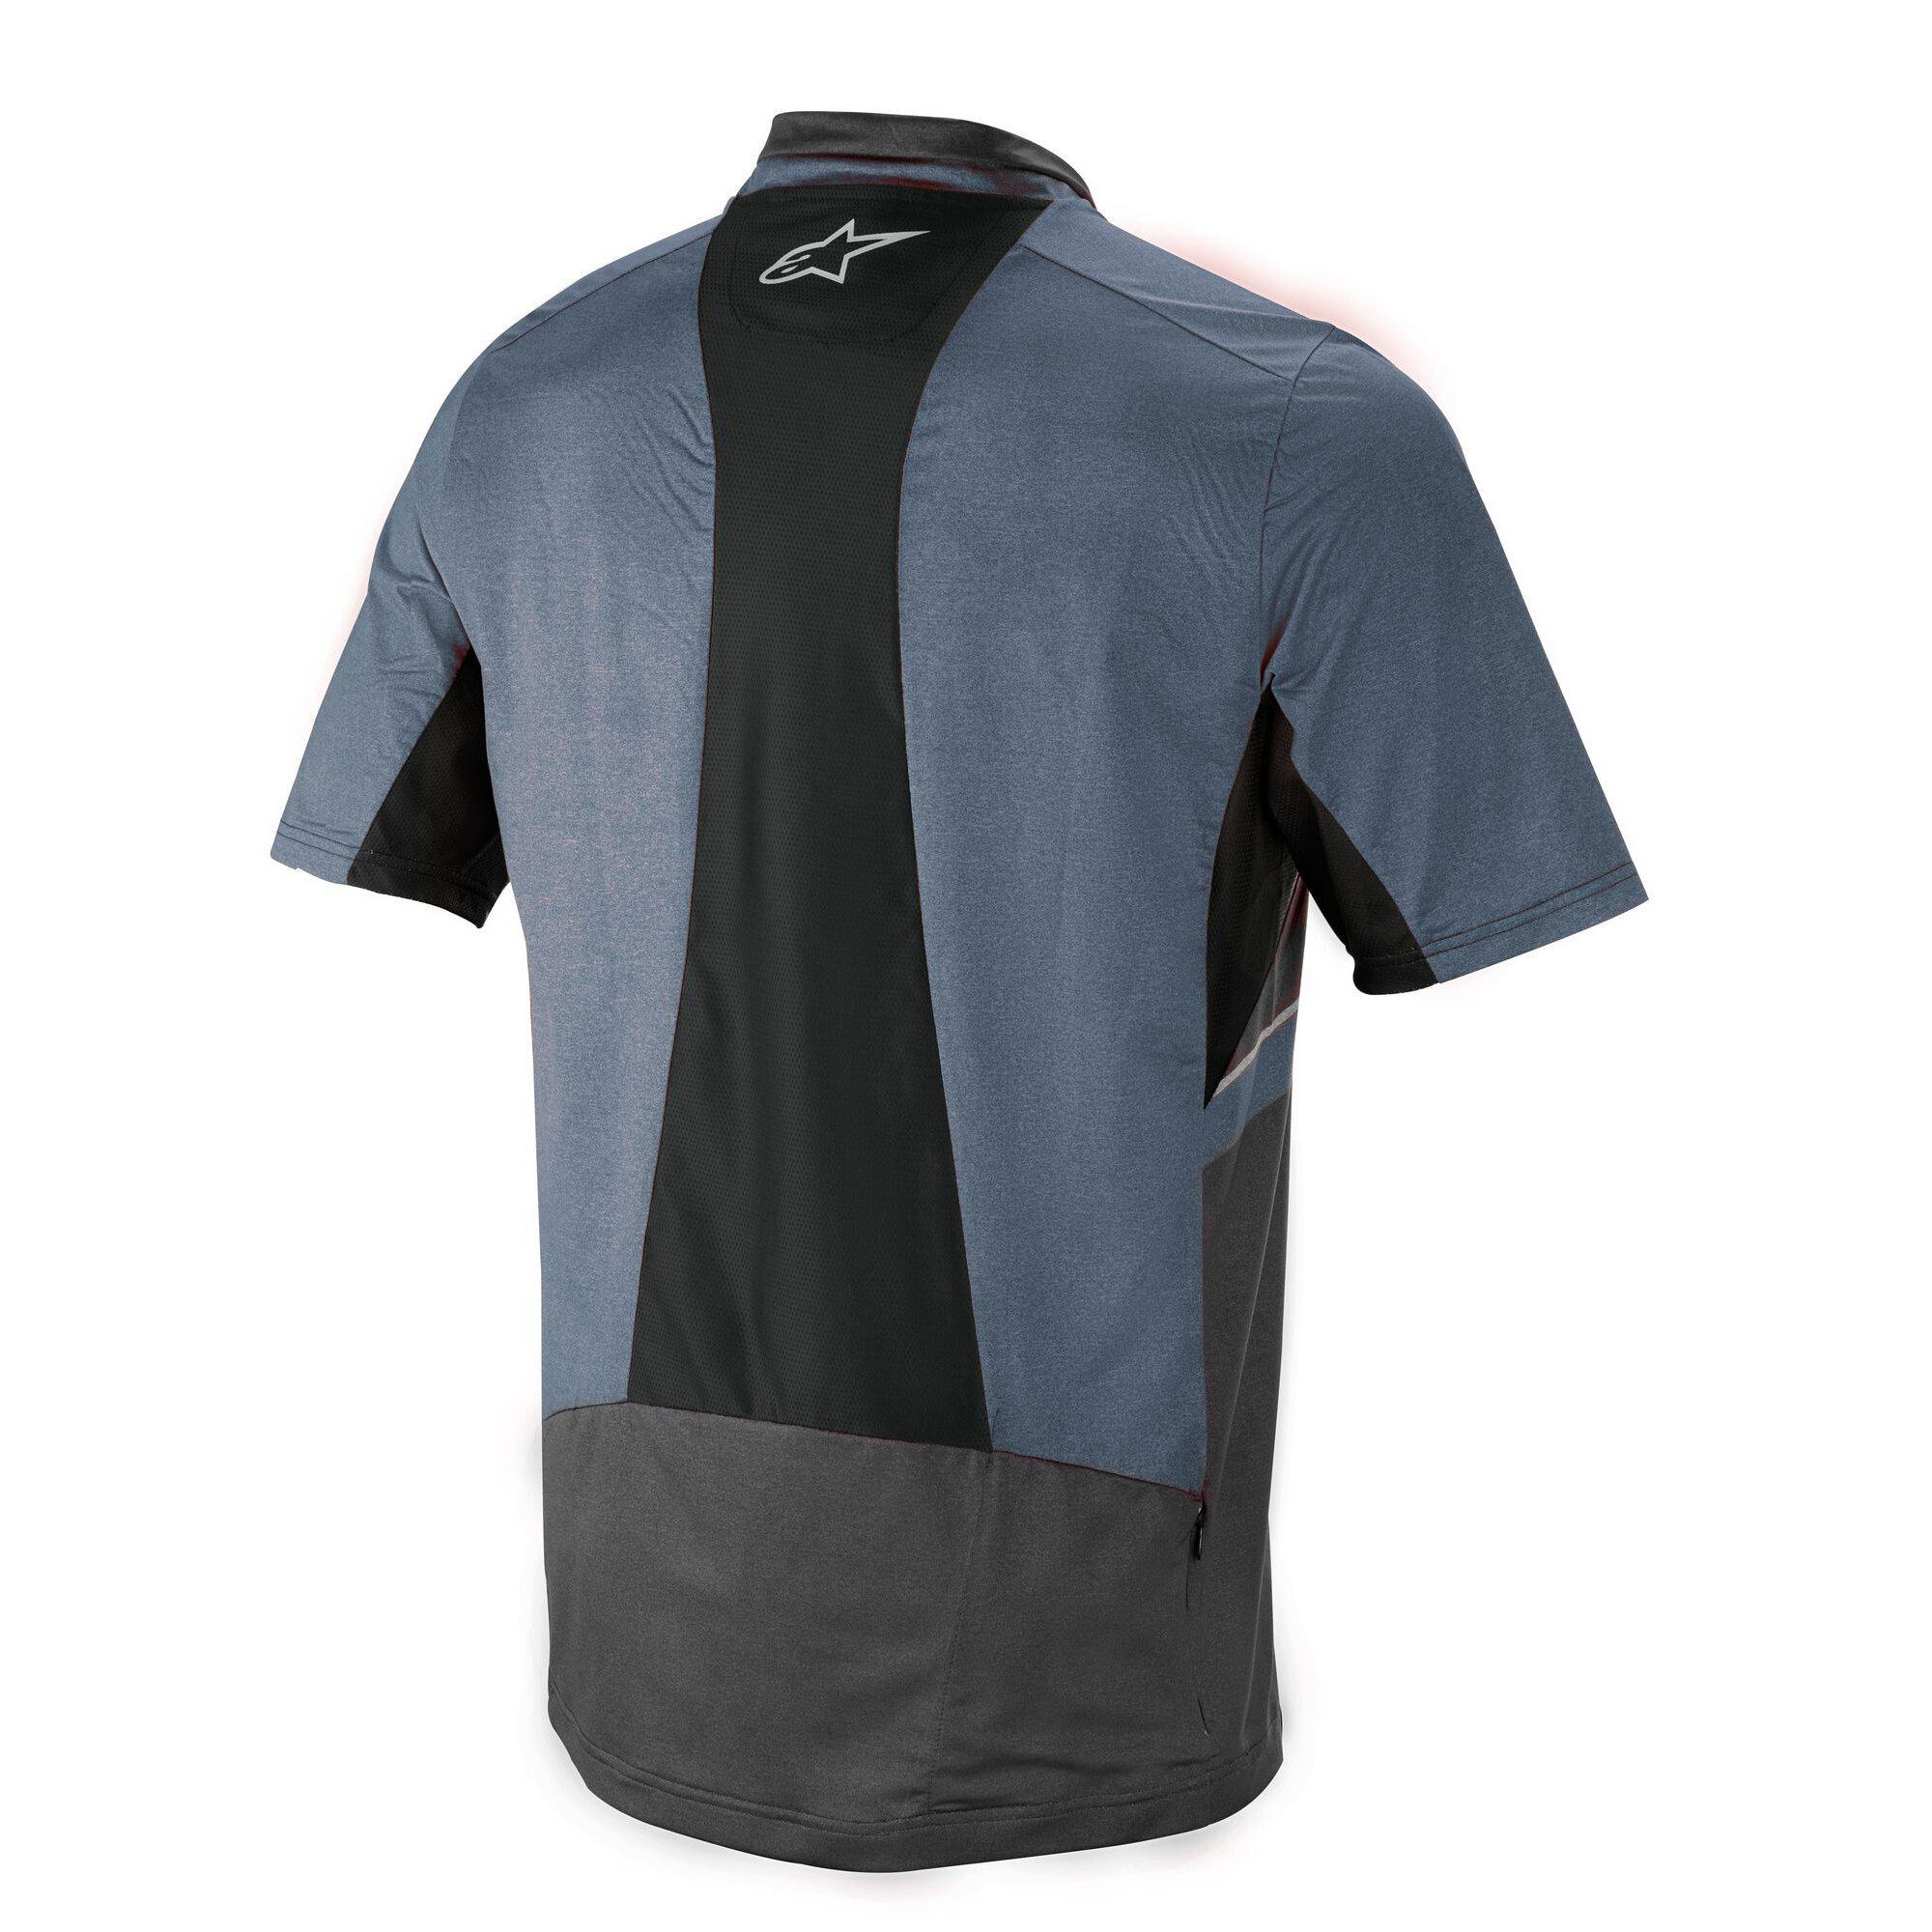 Alps 8.0 Short Sleeve Jerseys